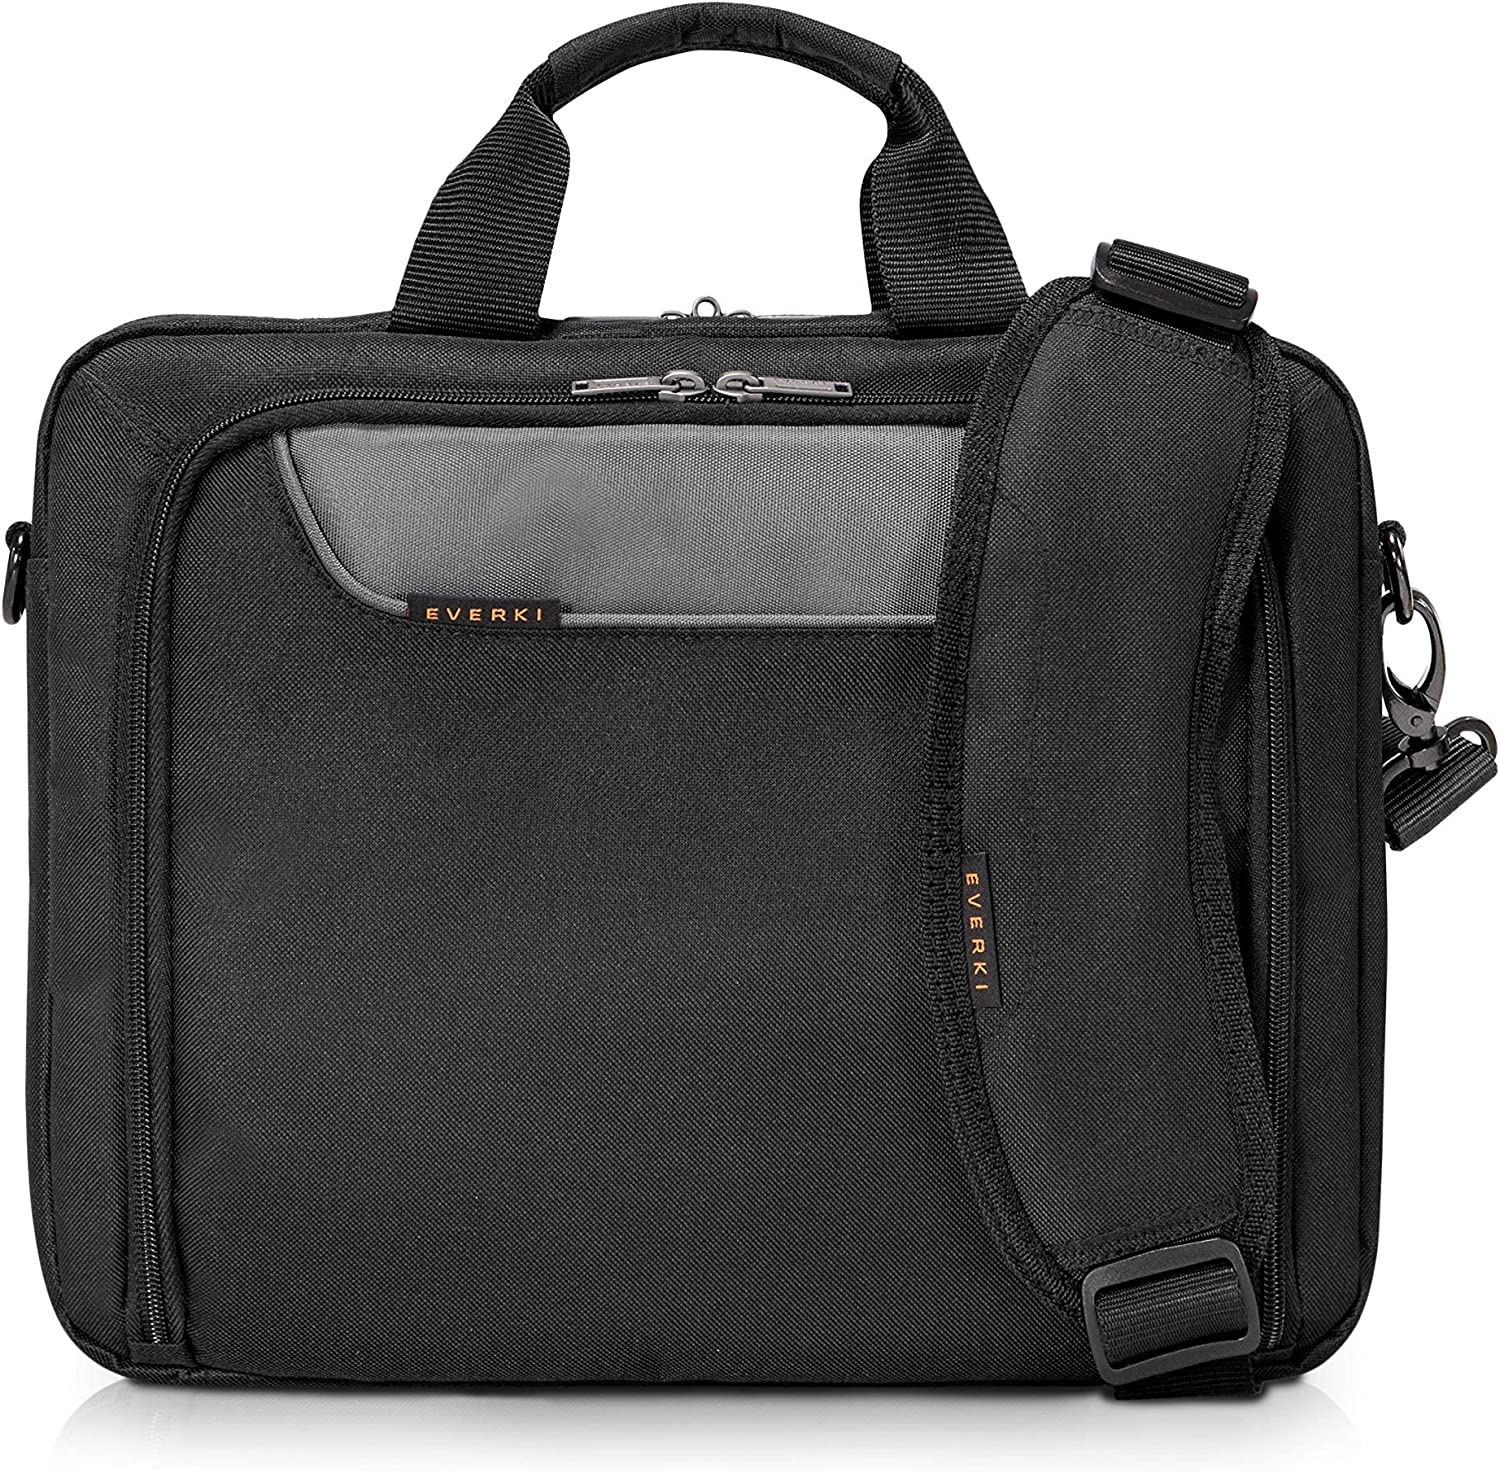 Everki Advance Bag - Briefcase for Upto 14.1-Inch Laptops (EKB407NCH14), Black